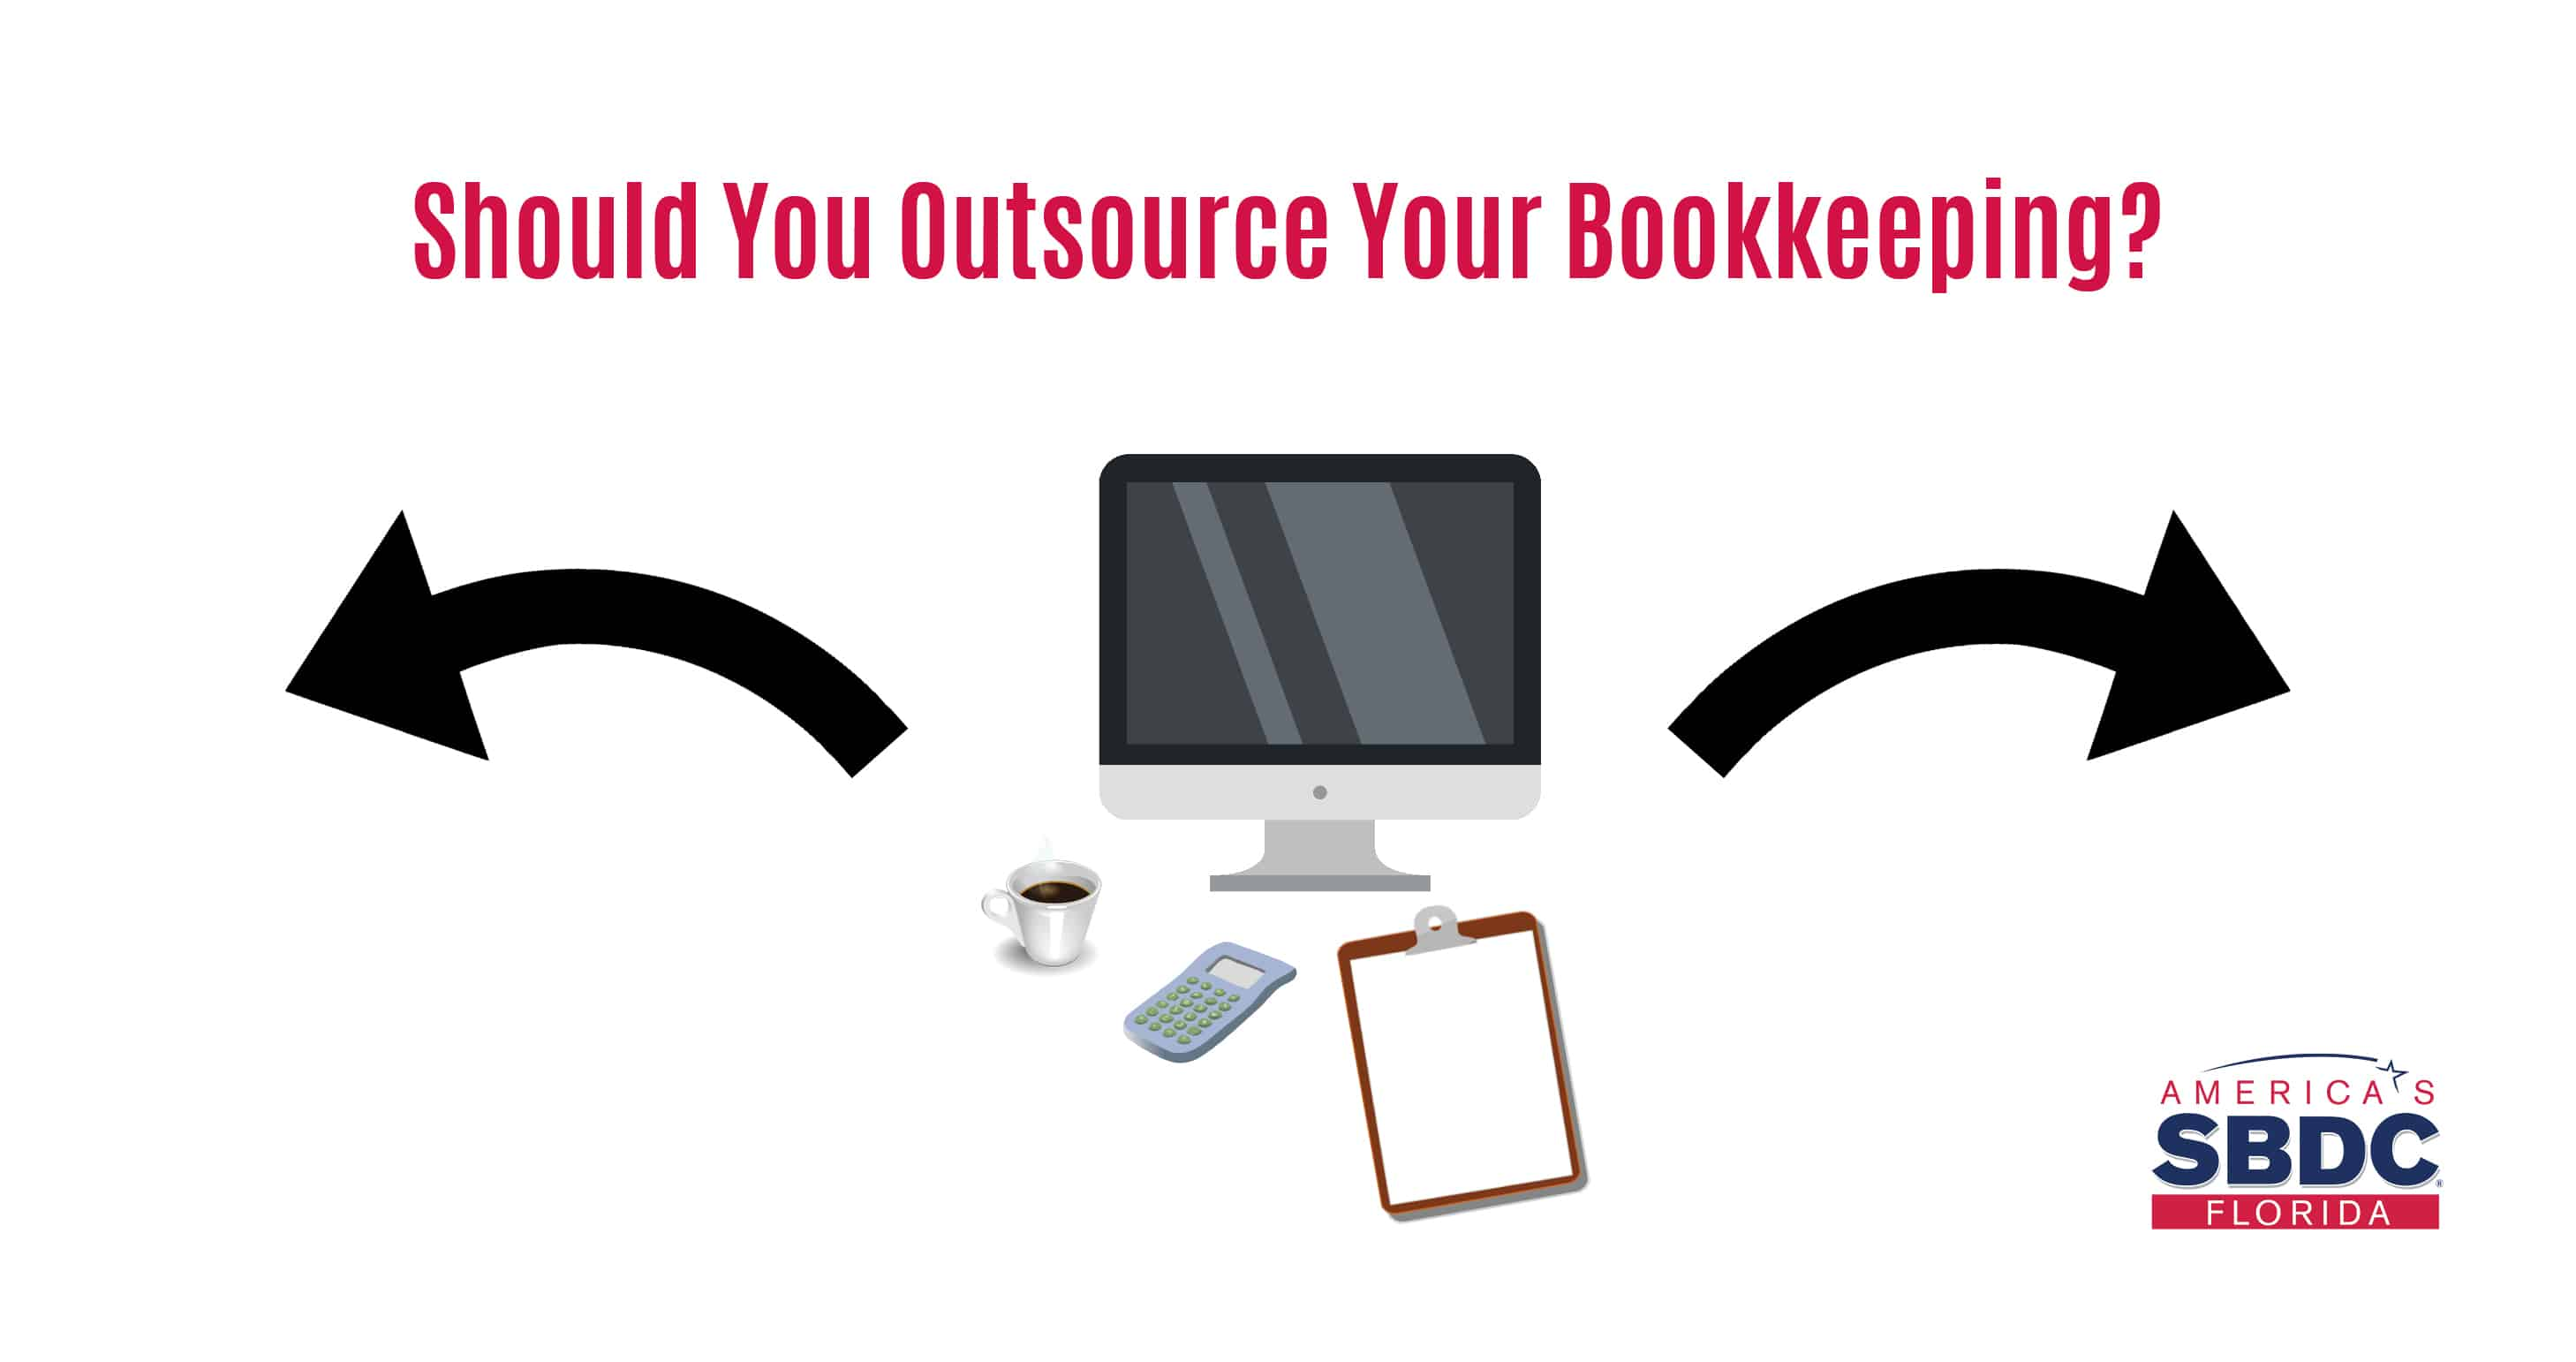 Should You Outsource Your Bookkeeping?